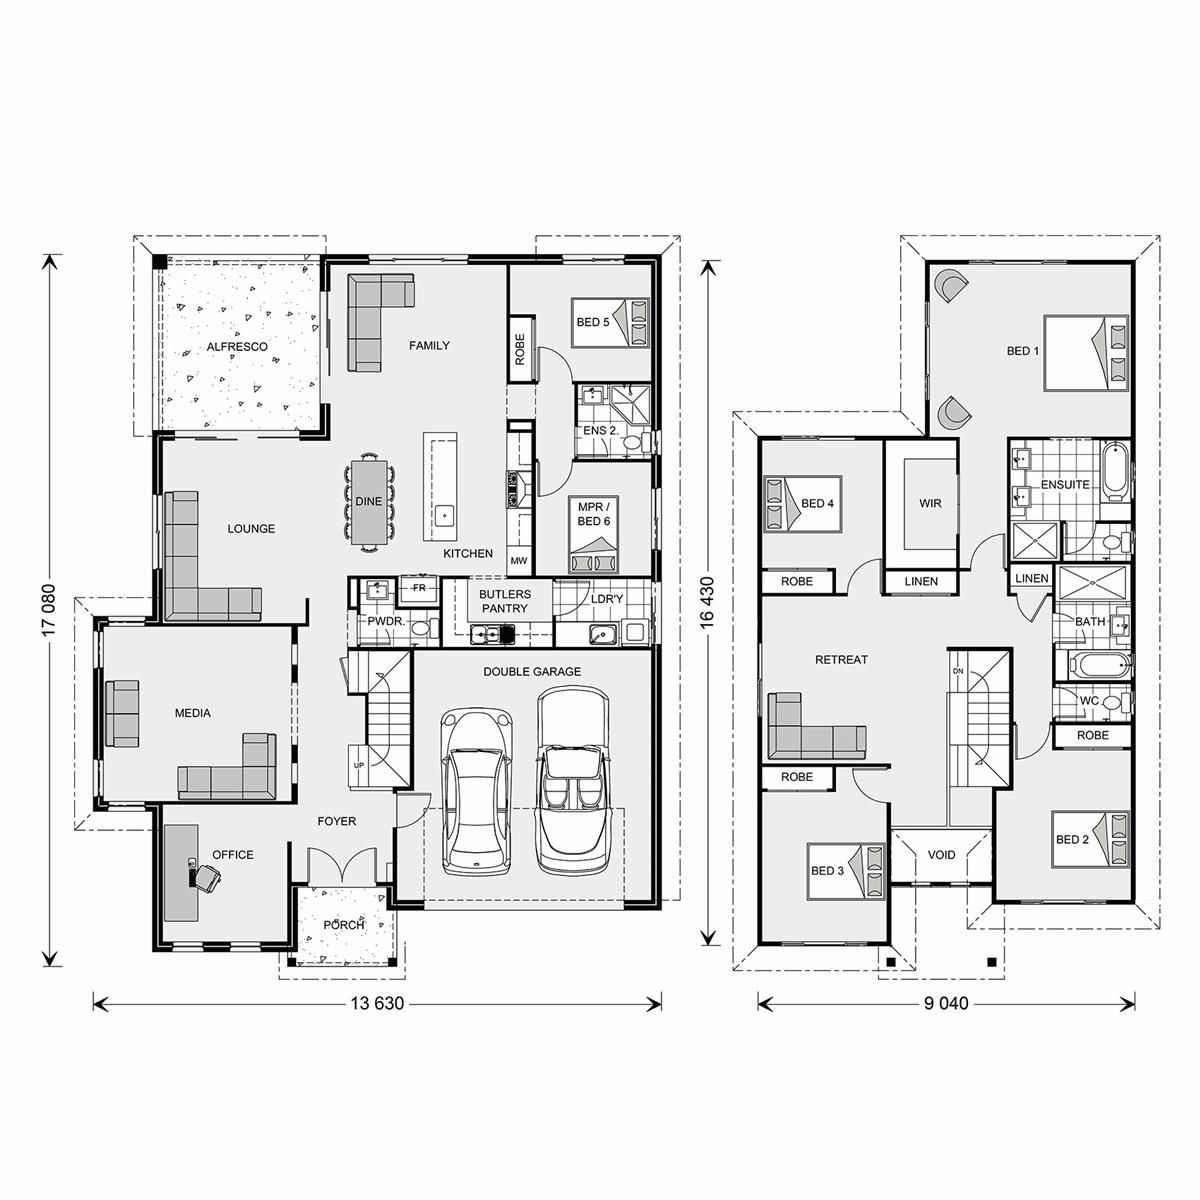 Twin Waters 330 Element, Home Designs in Perth West G